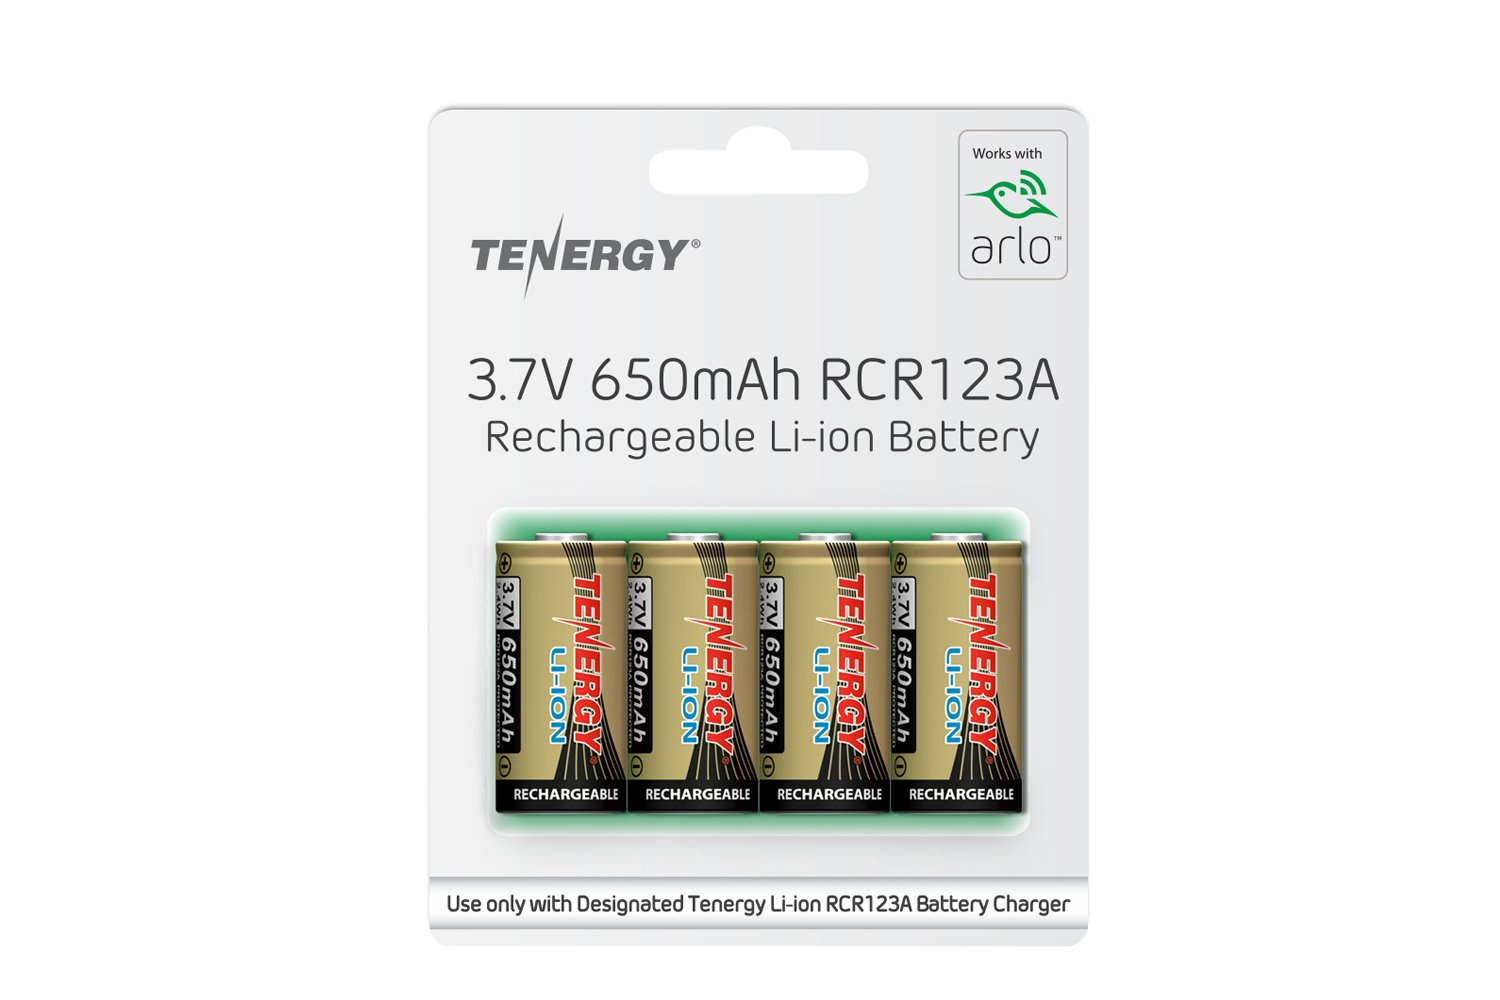 Arlo Certified: Tenergy 3.7V Li-ion Rechargeable Battery for Arlo Security Cameras (VMC3030/VMK3200/VMS3330/3430/3530) 650mAh RCR123A UL UN Certified 4 Pack by Tenergy